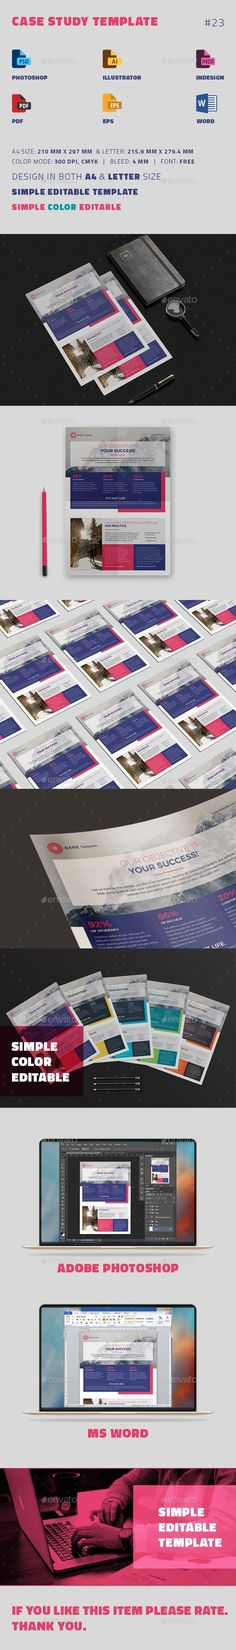 Case Study Template | #Flyer - #Newsletters Print #Templates Download here: https://graphicriver.net/item/case-study-template-flyer/19402406?ref=alena994